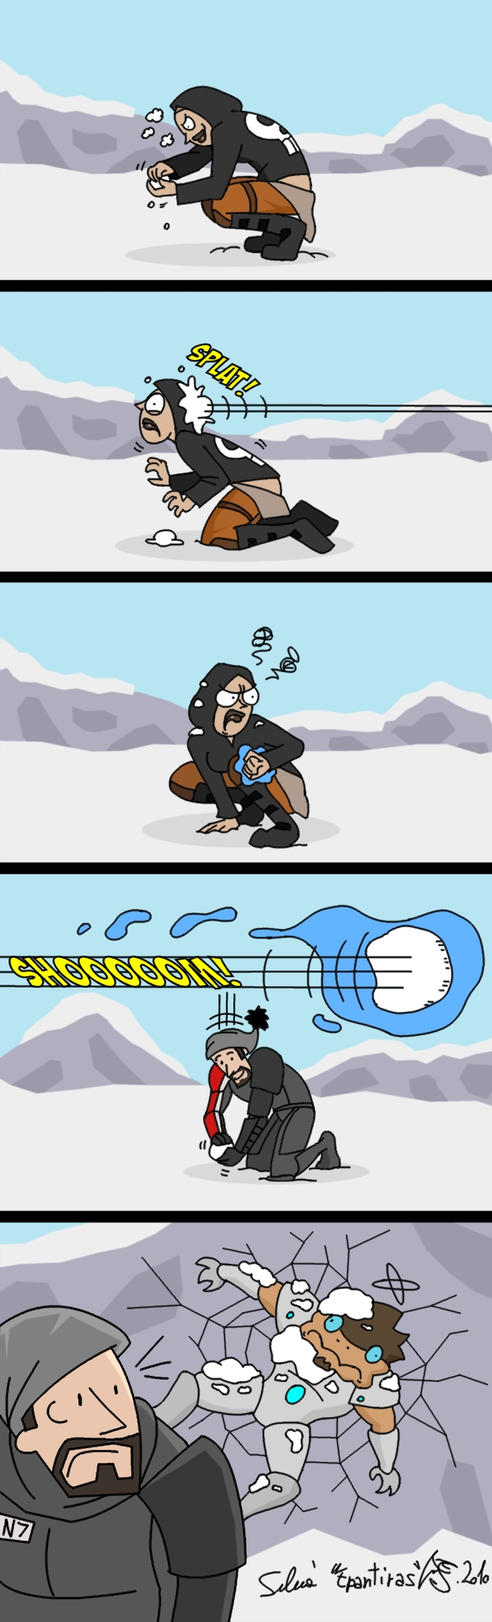 ME2 biotic snowball by Epantiras